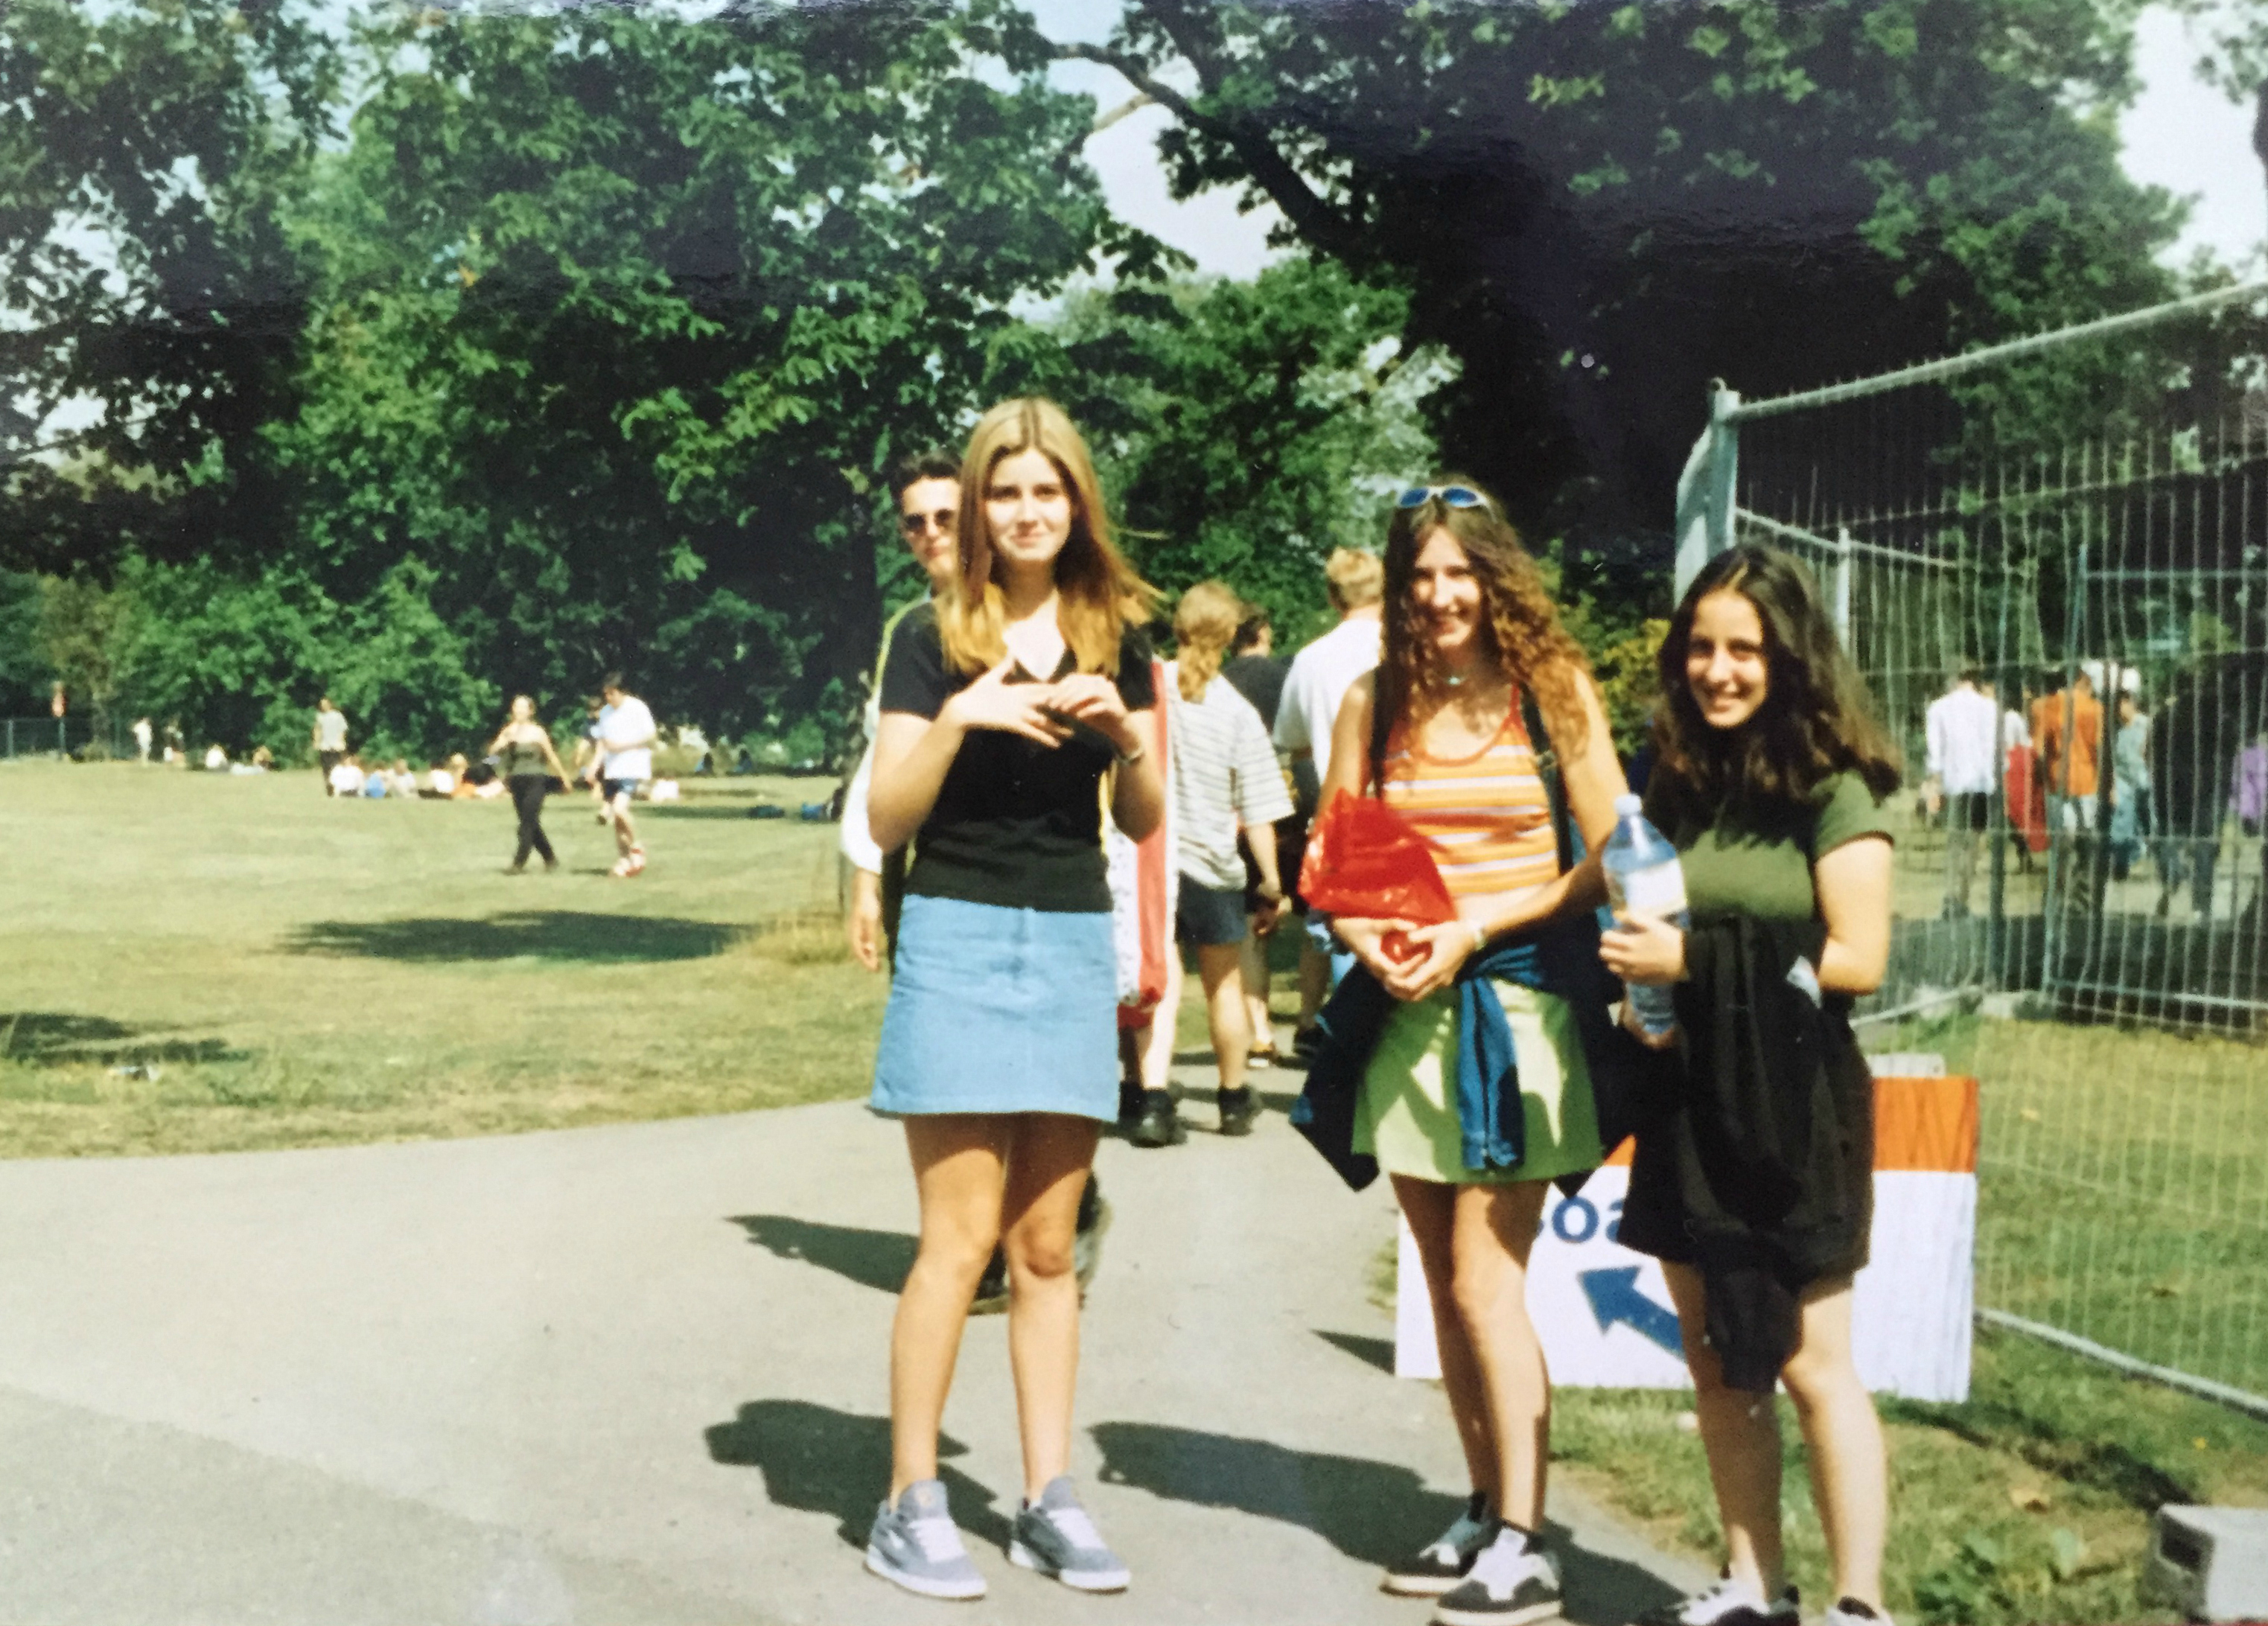 Outside Hylands Park Chelmsford for V96 festival, 1996, copyright: Natalie Wall